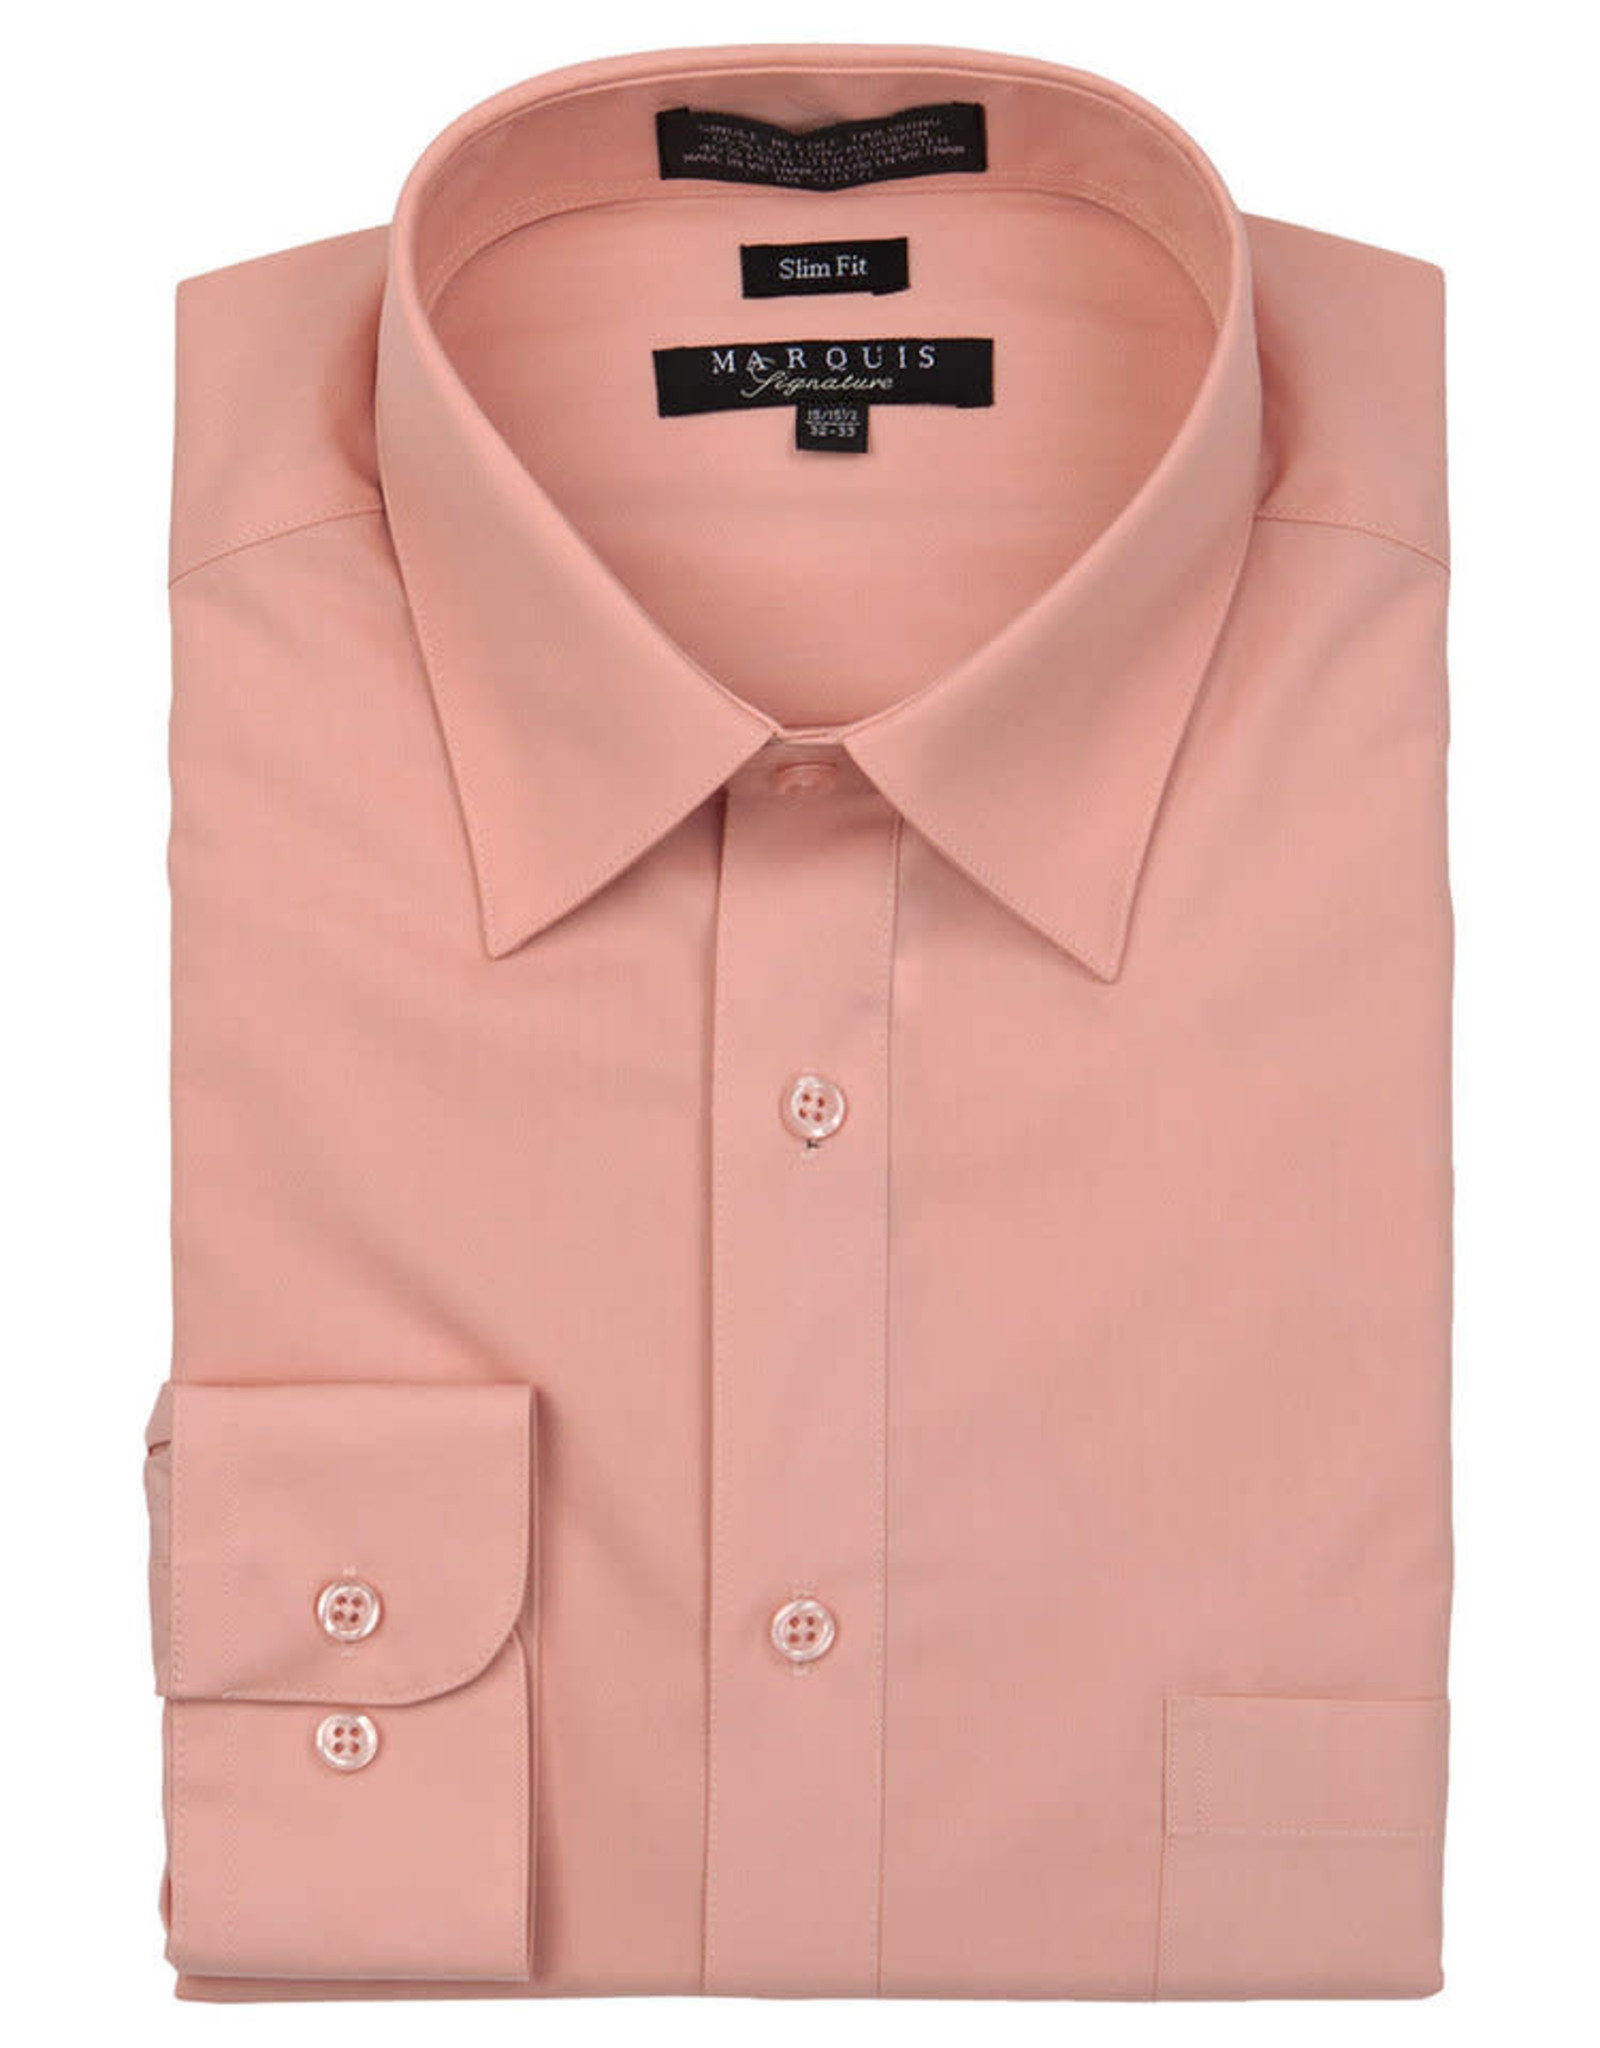 Marquis Dress Shirt MarQuis Slim Fit Dust Rose